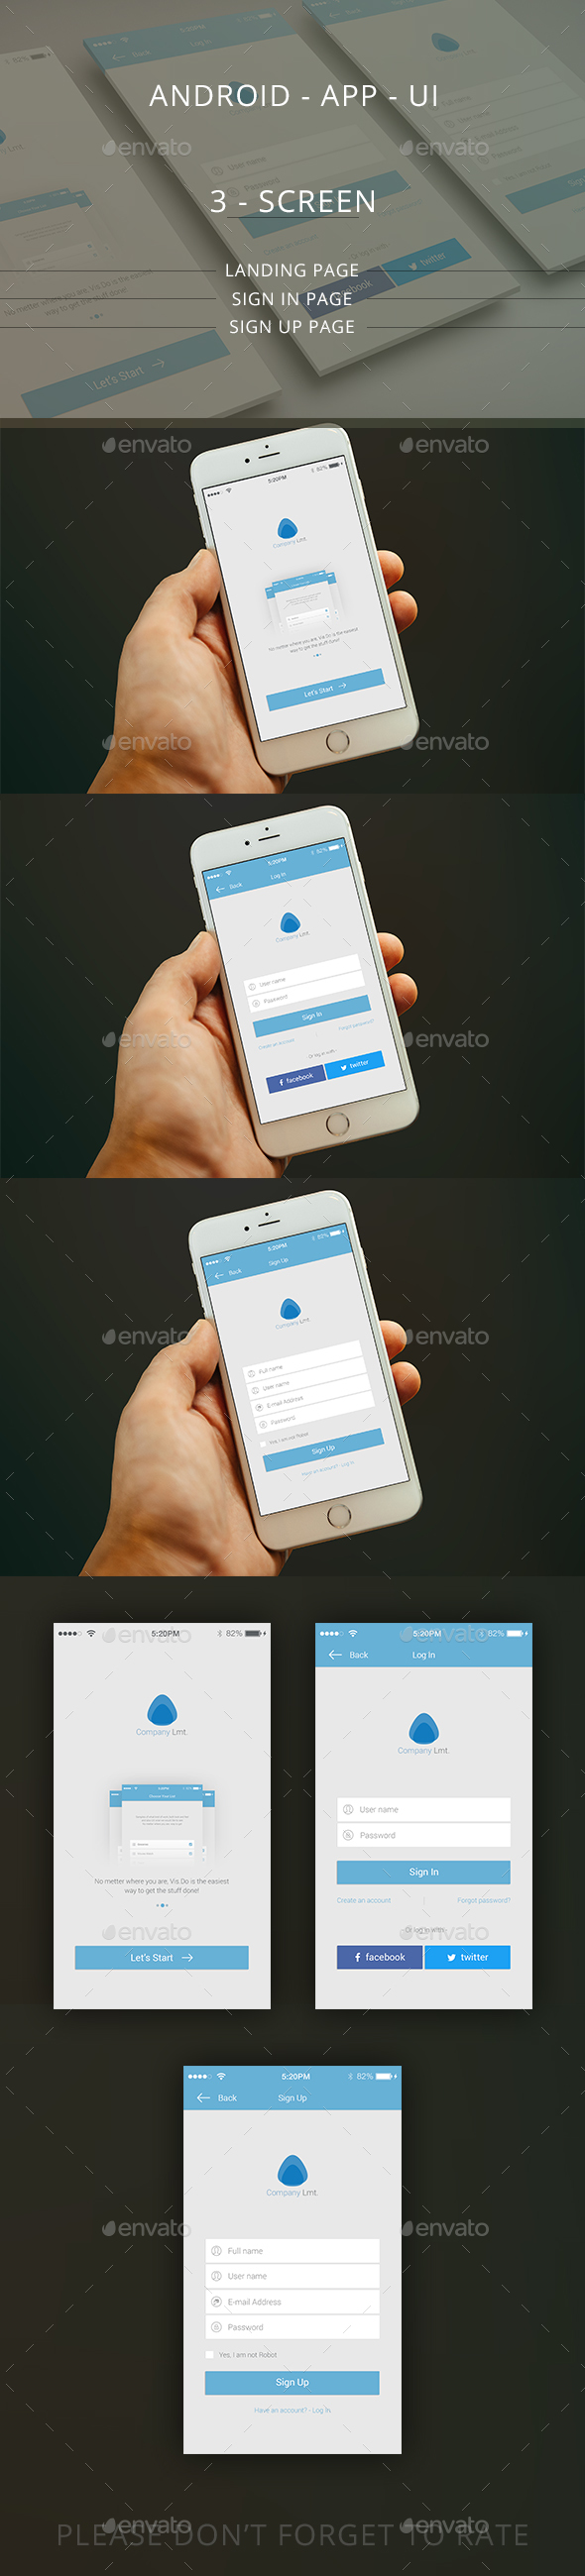 Mobile App UI / Landing/Log in/ Sign up page (User Interfaces)